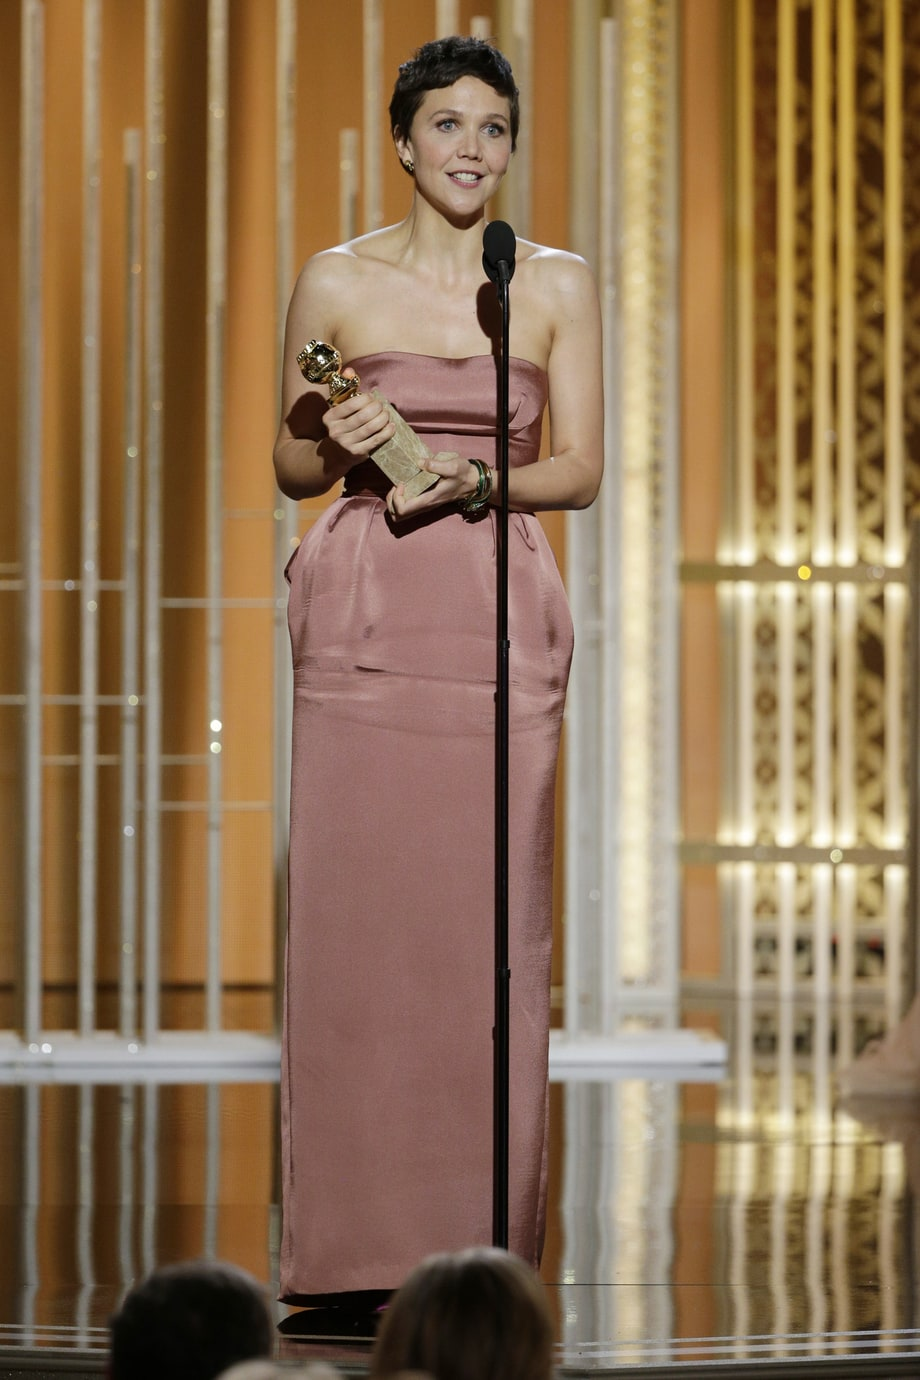 BEST: Maggie Gyllenhaal's 'Actual Women' Speech